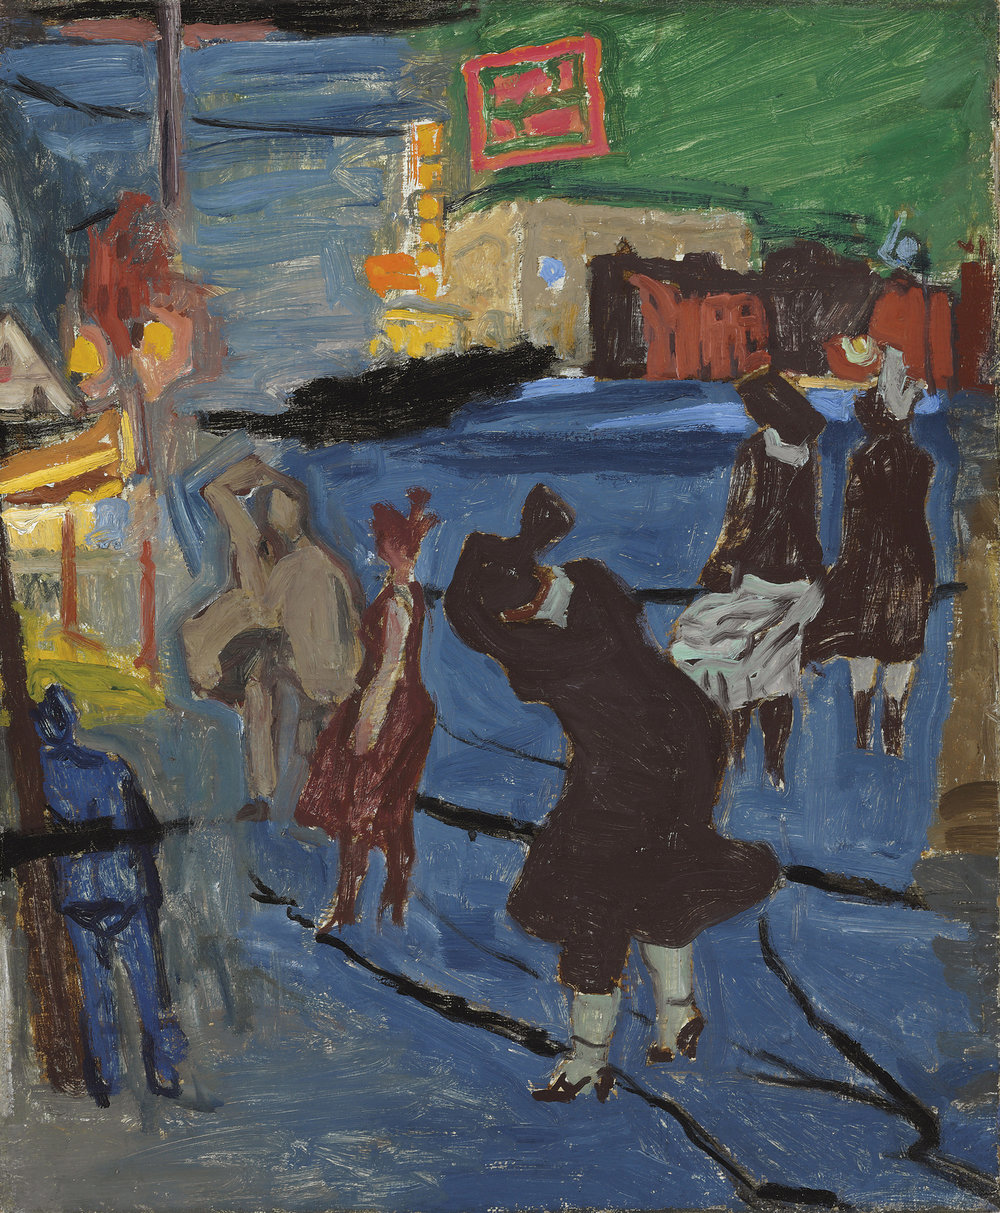 Image Credit: Windy Night, Newark, 1917. Stuart Davis (1892 - 1964). Private Collection. © Christie's